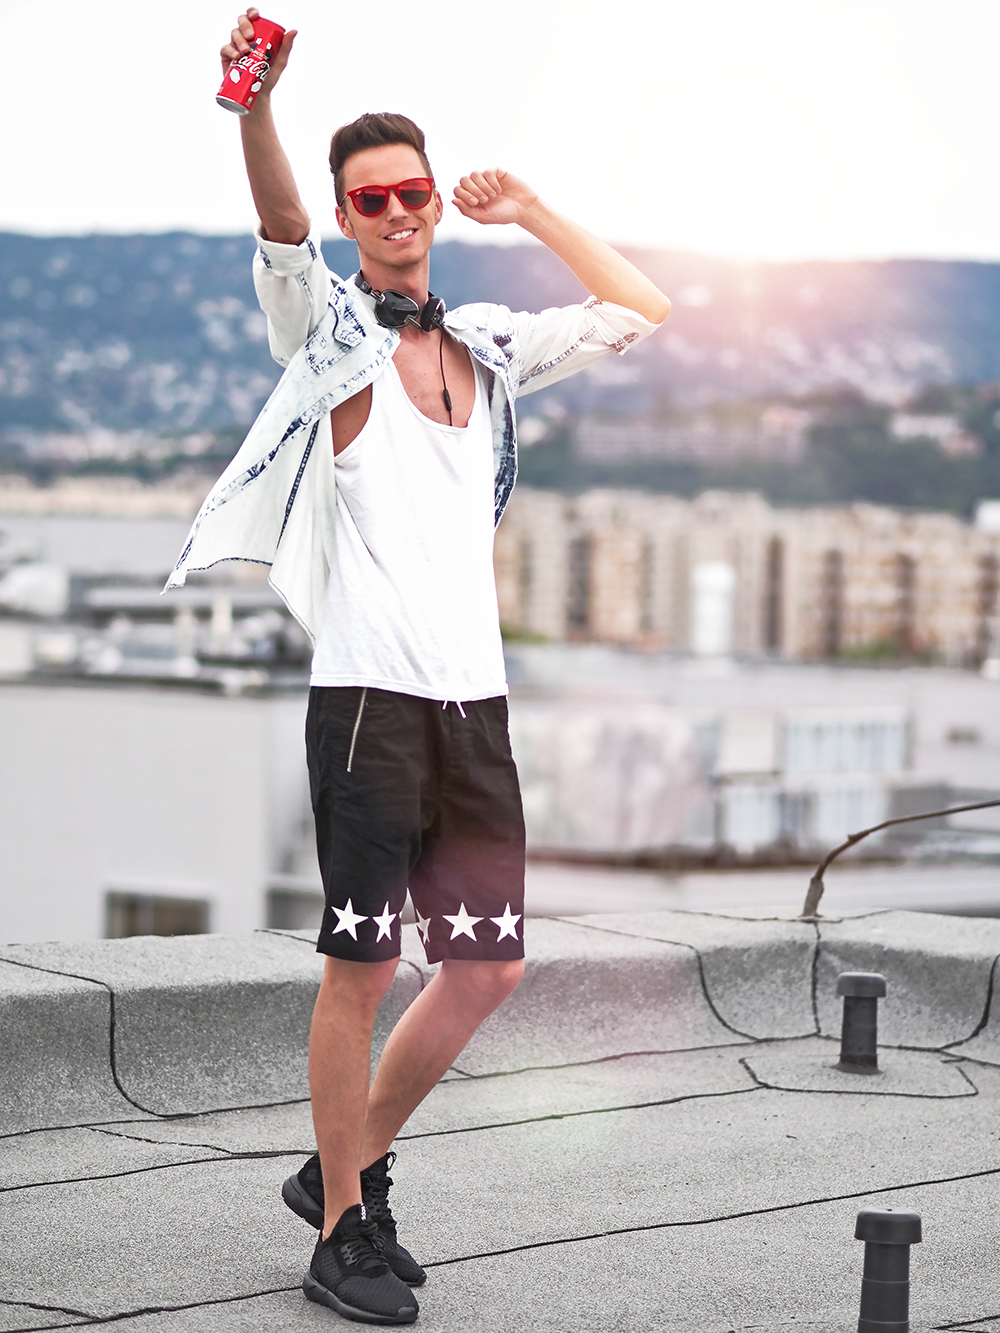 sunset-outfit-street-style-fashionblogger-male-fashion-divatblogger.PNG